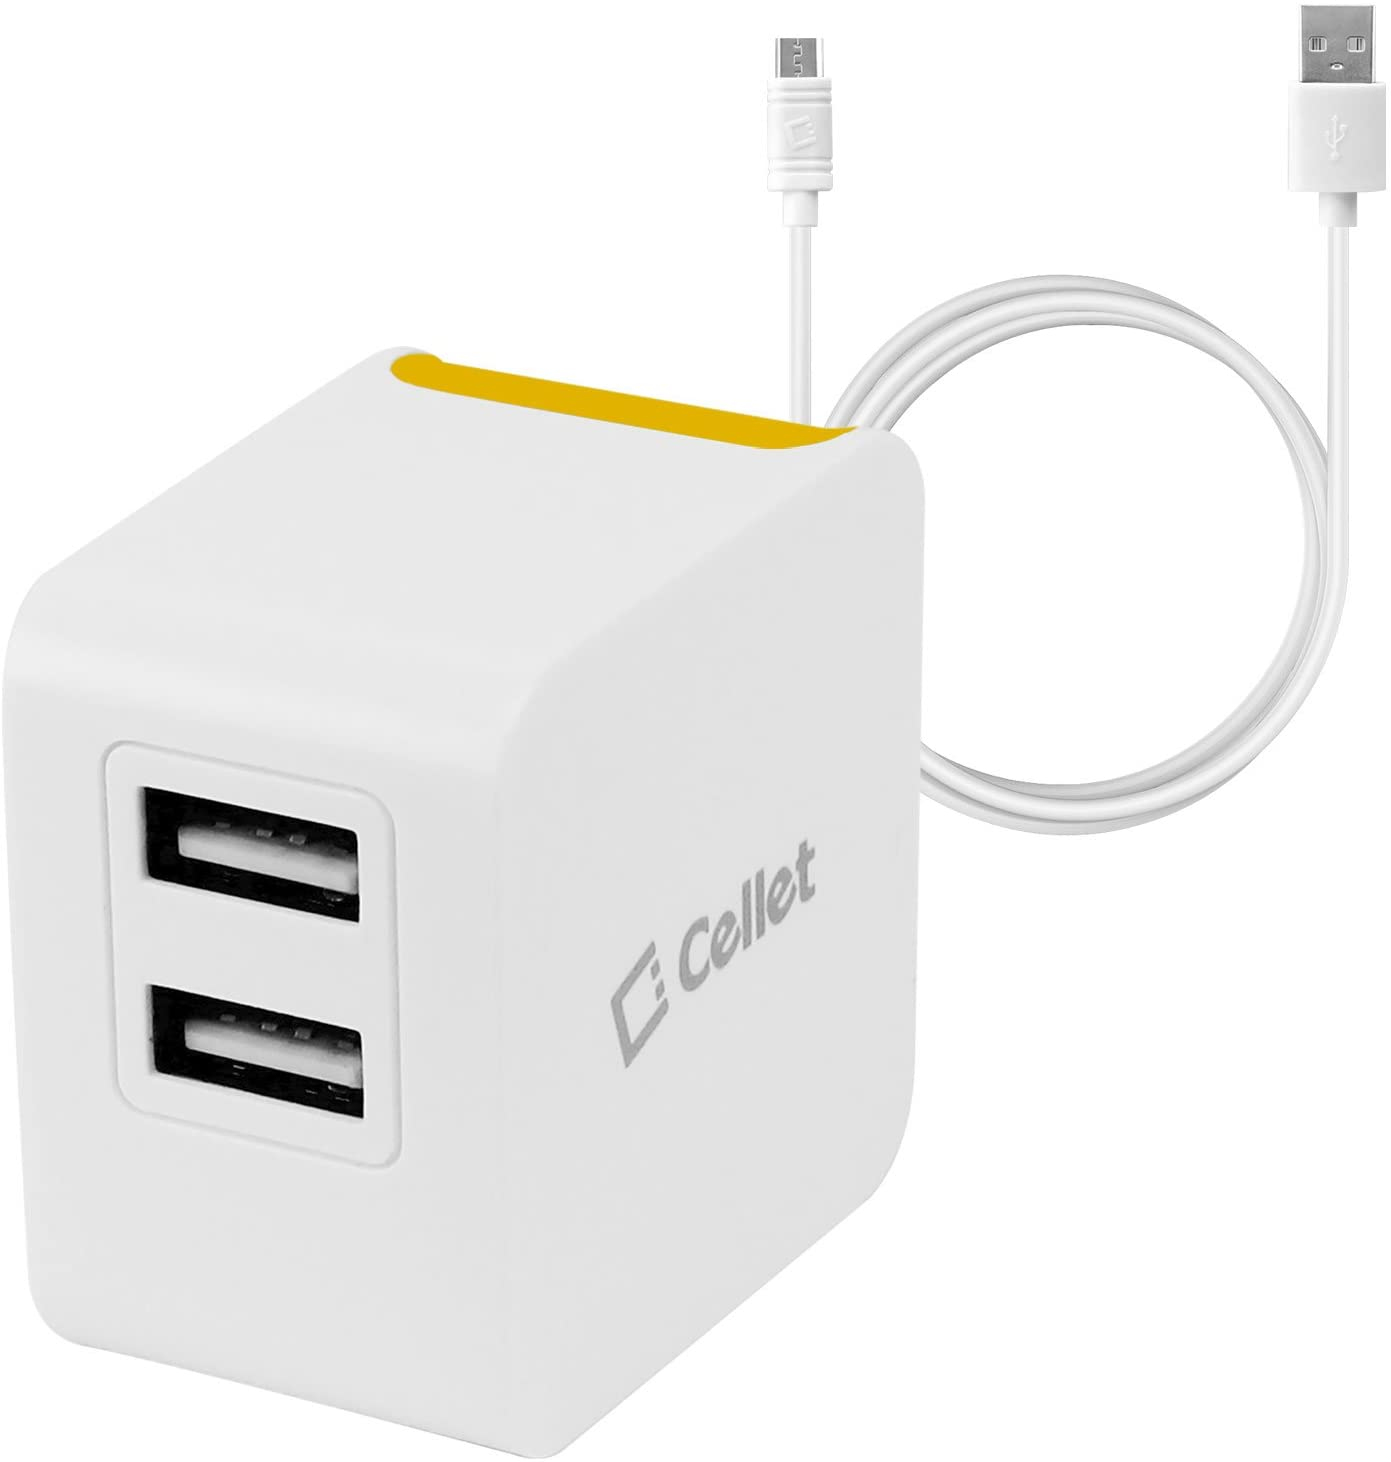 Cellet Universal High Powered 12W/2.4A Dual USB Home Charger Compatible to DHgate Kindle, DHgate Fire Tablets, eReaders and Echo Dot, Paperwhite, Oasis (4 ft. Micro USB Cable Included) - Orange